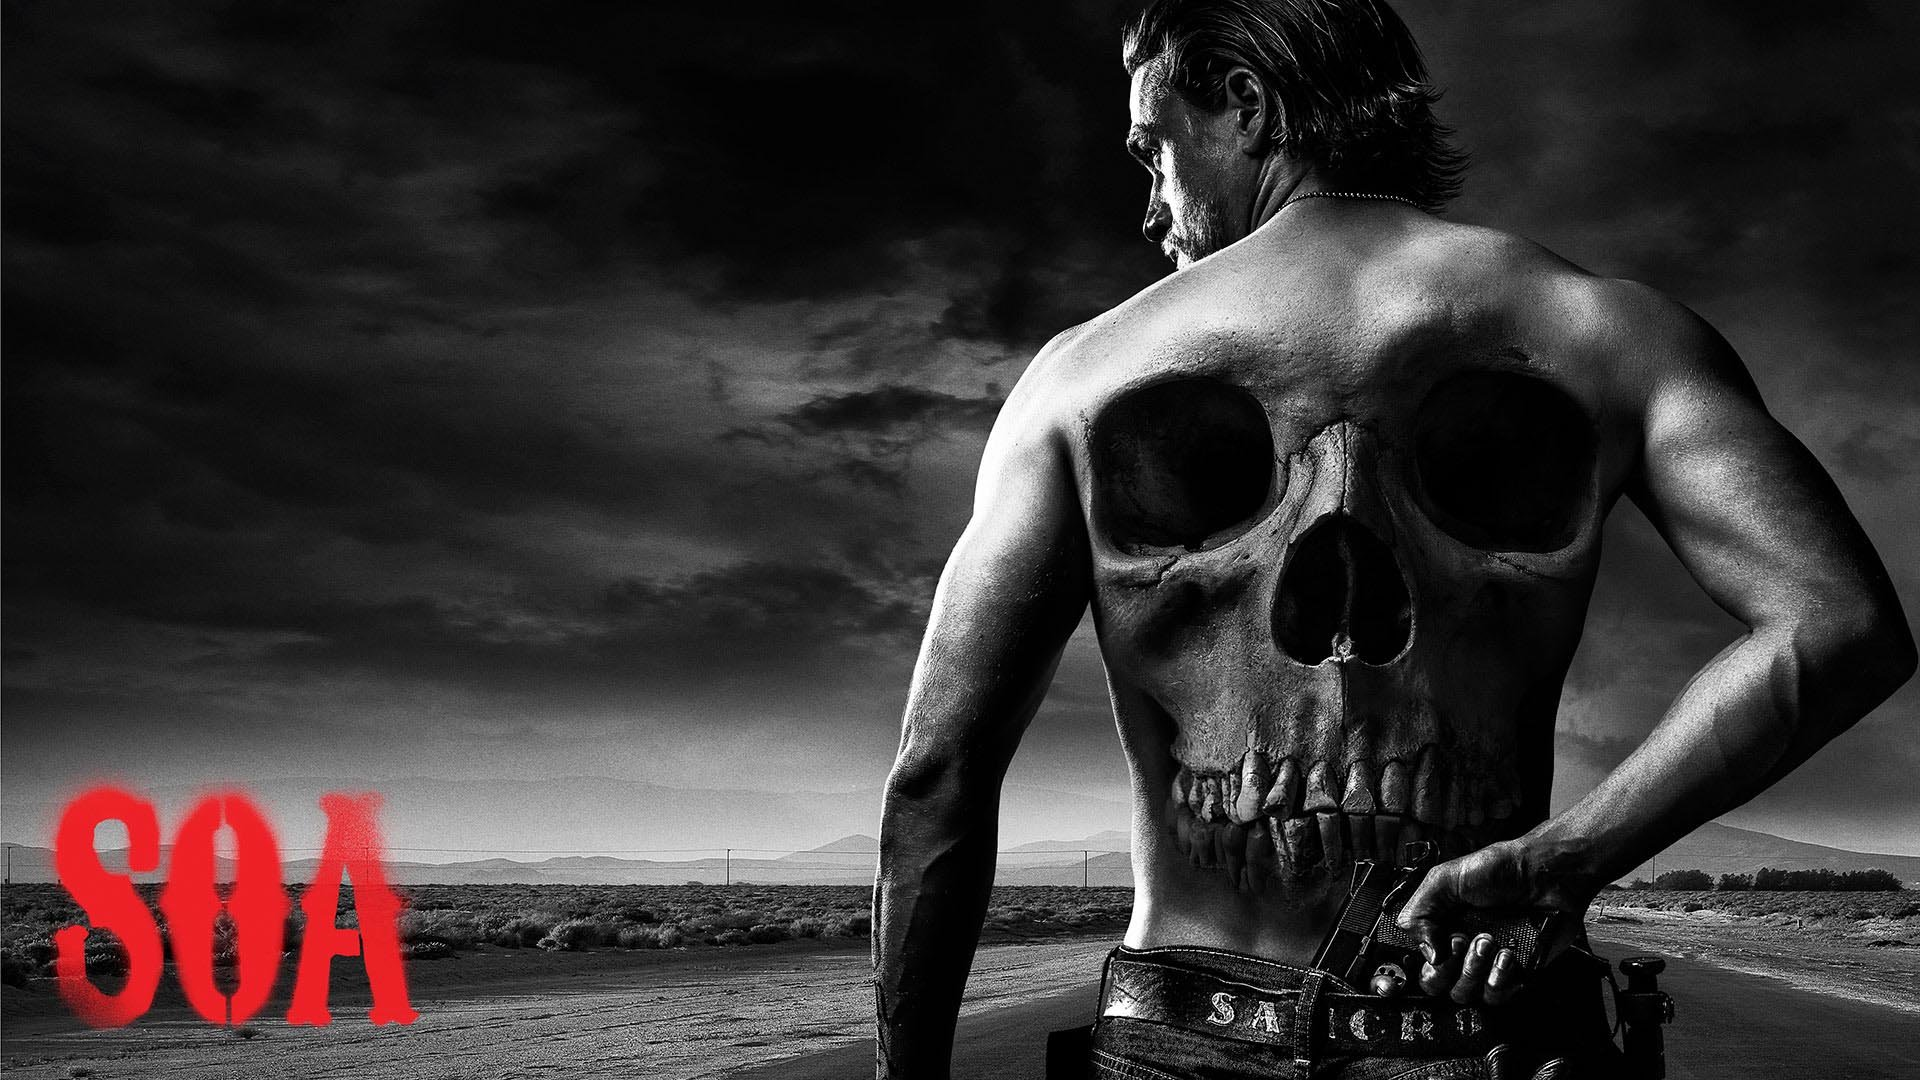 Free Download Sons Of Anarchy Wallpaper Id 187596 Full Hd 1080p